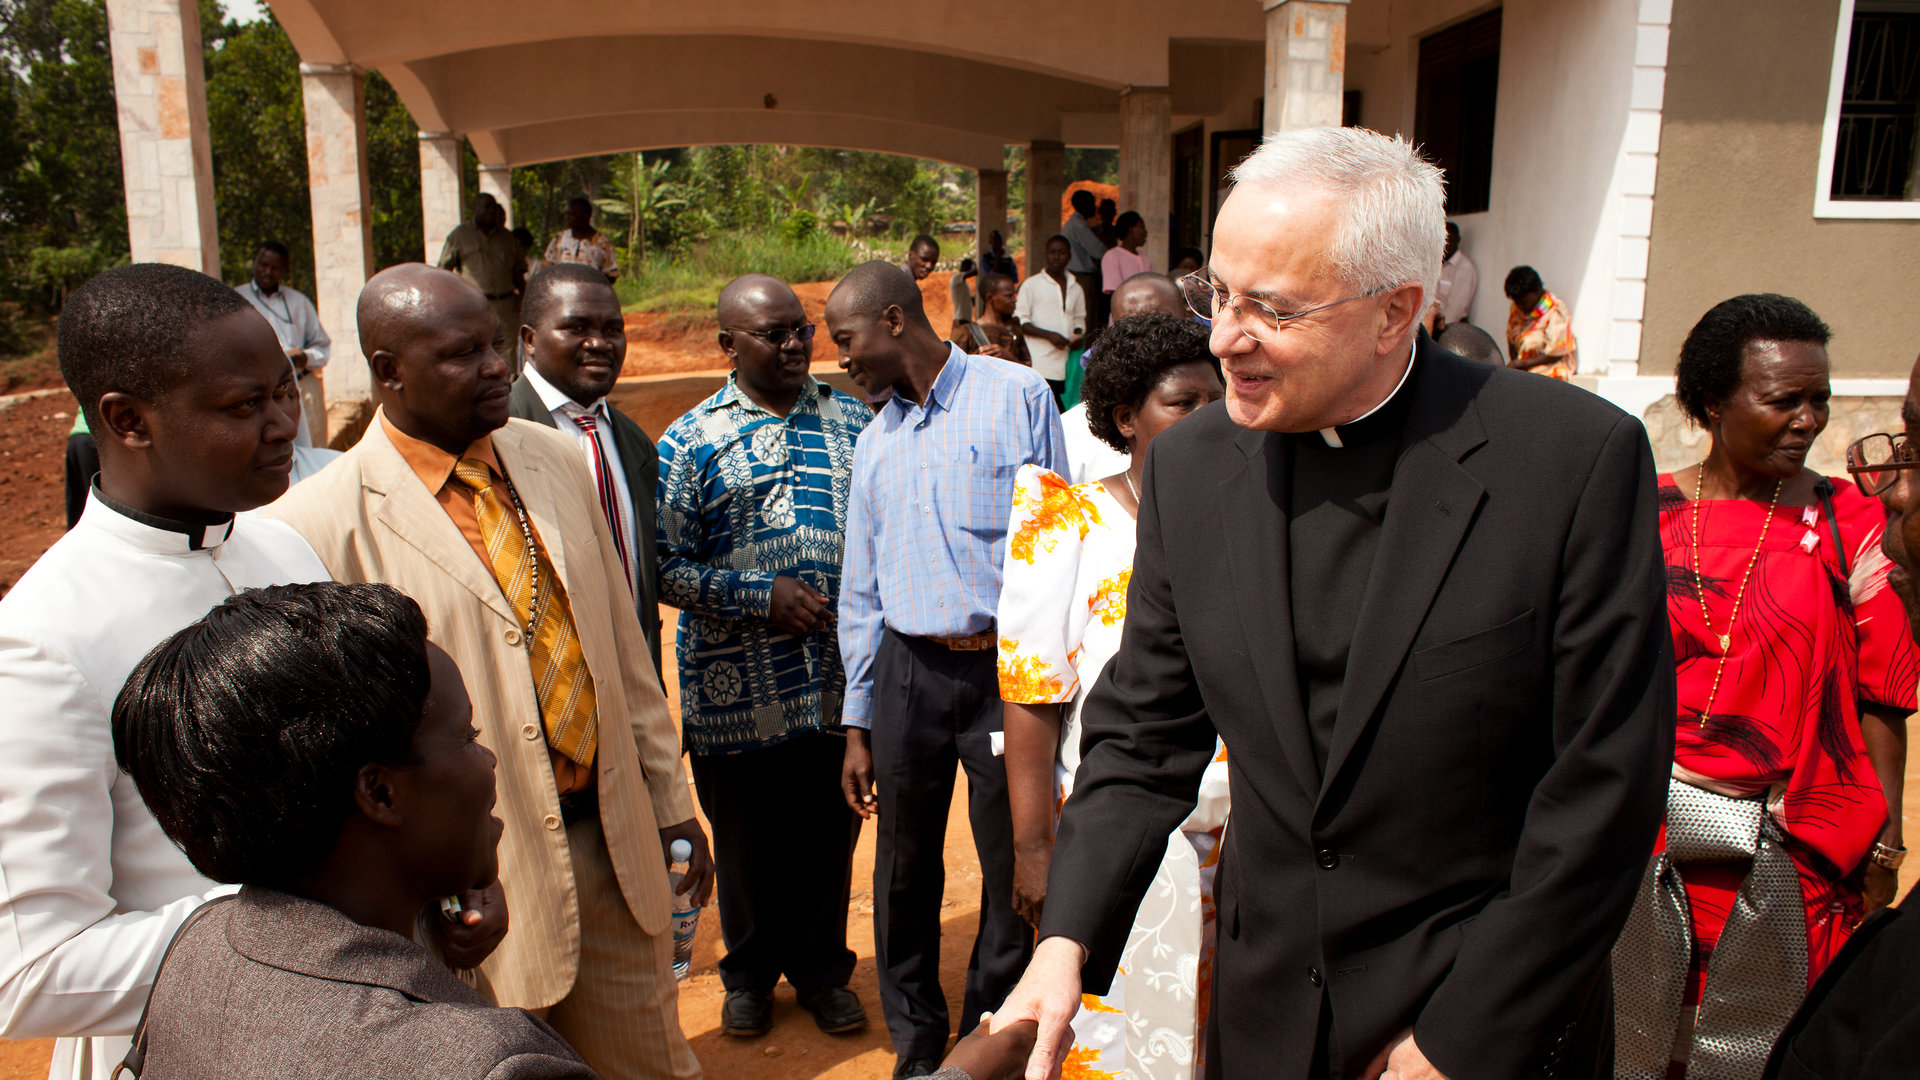 father Dennis Dease shakes hands with locals in Uganda